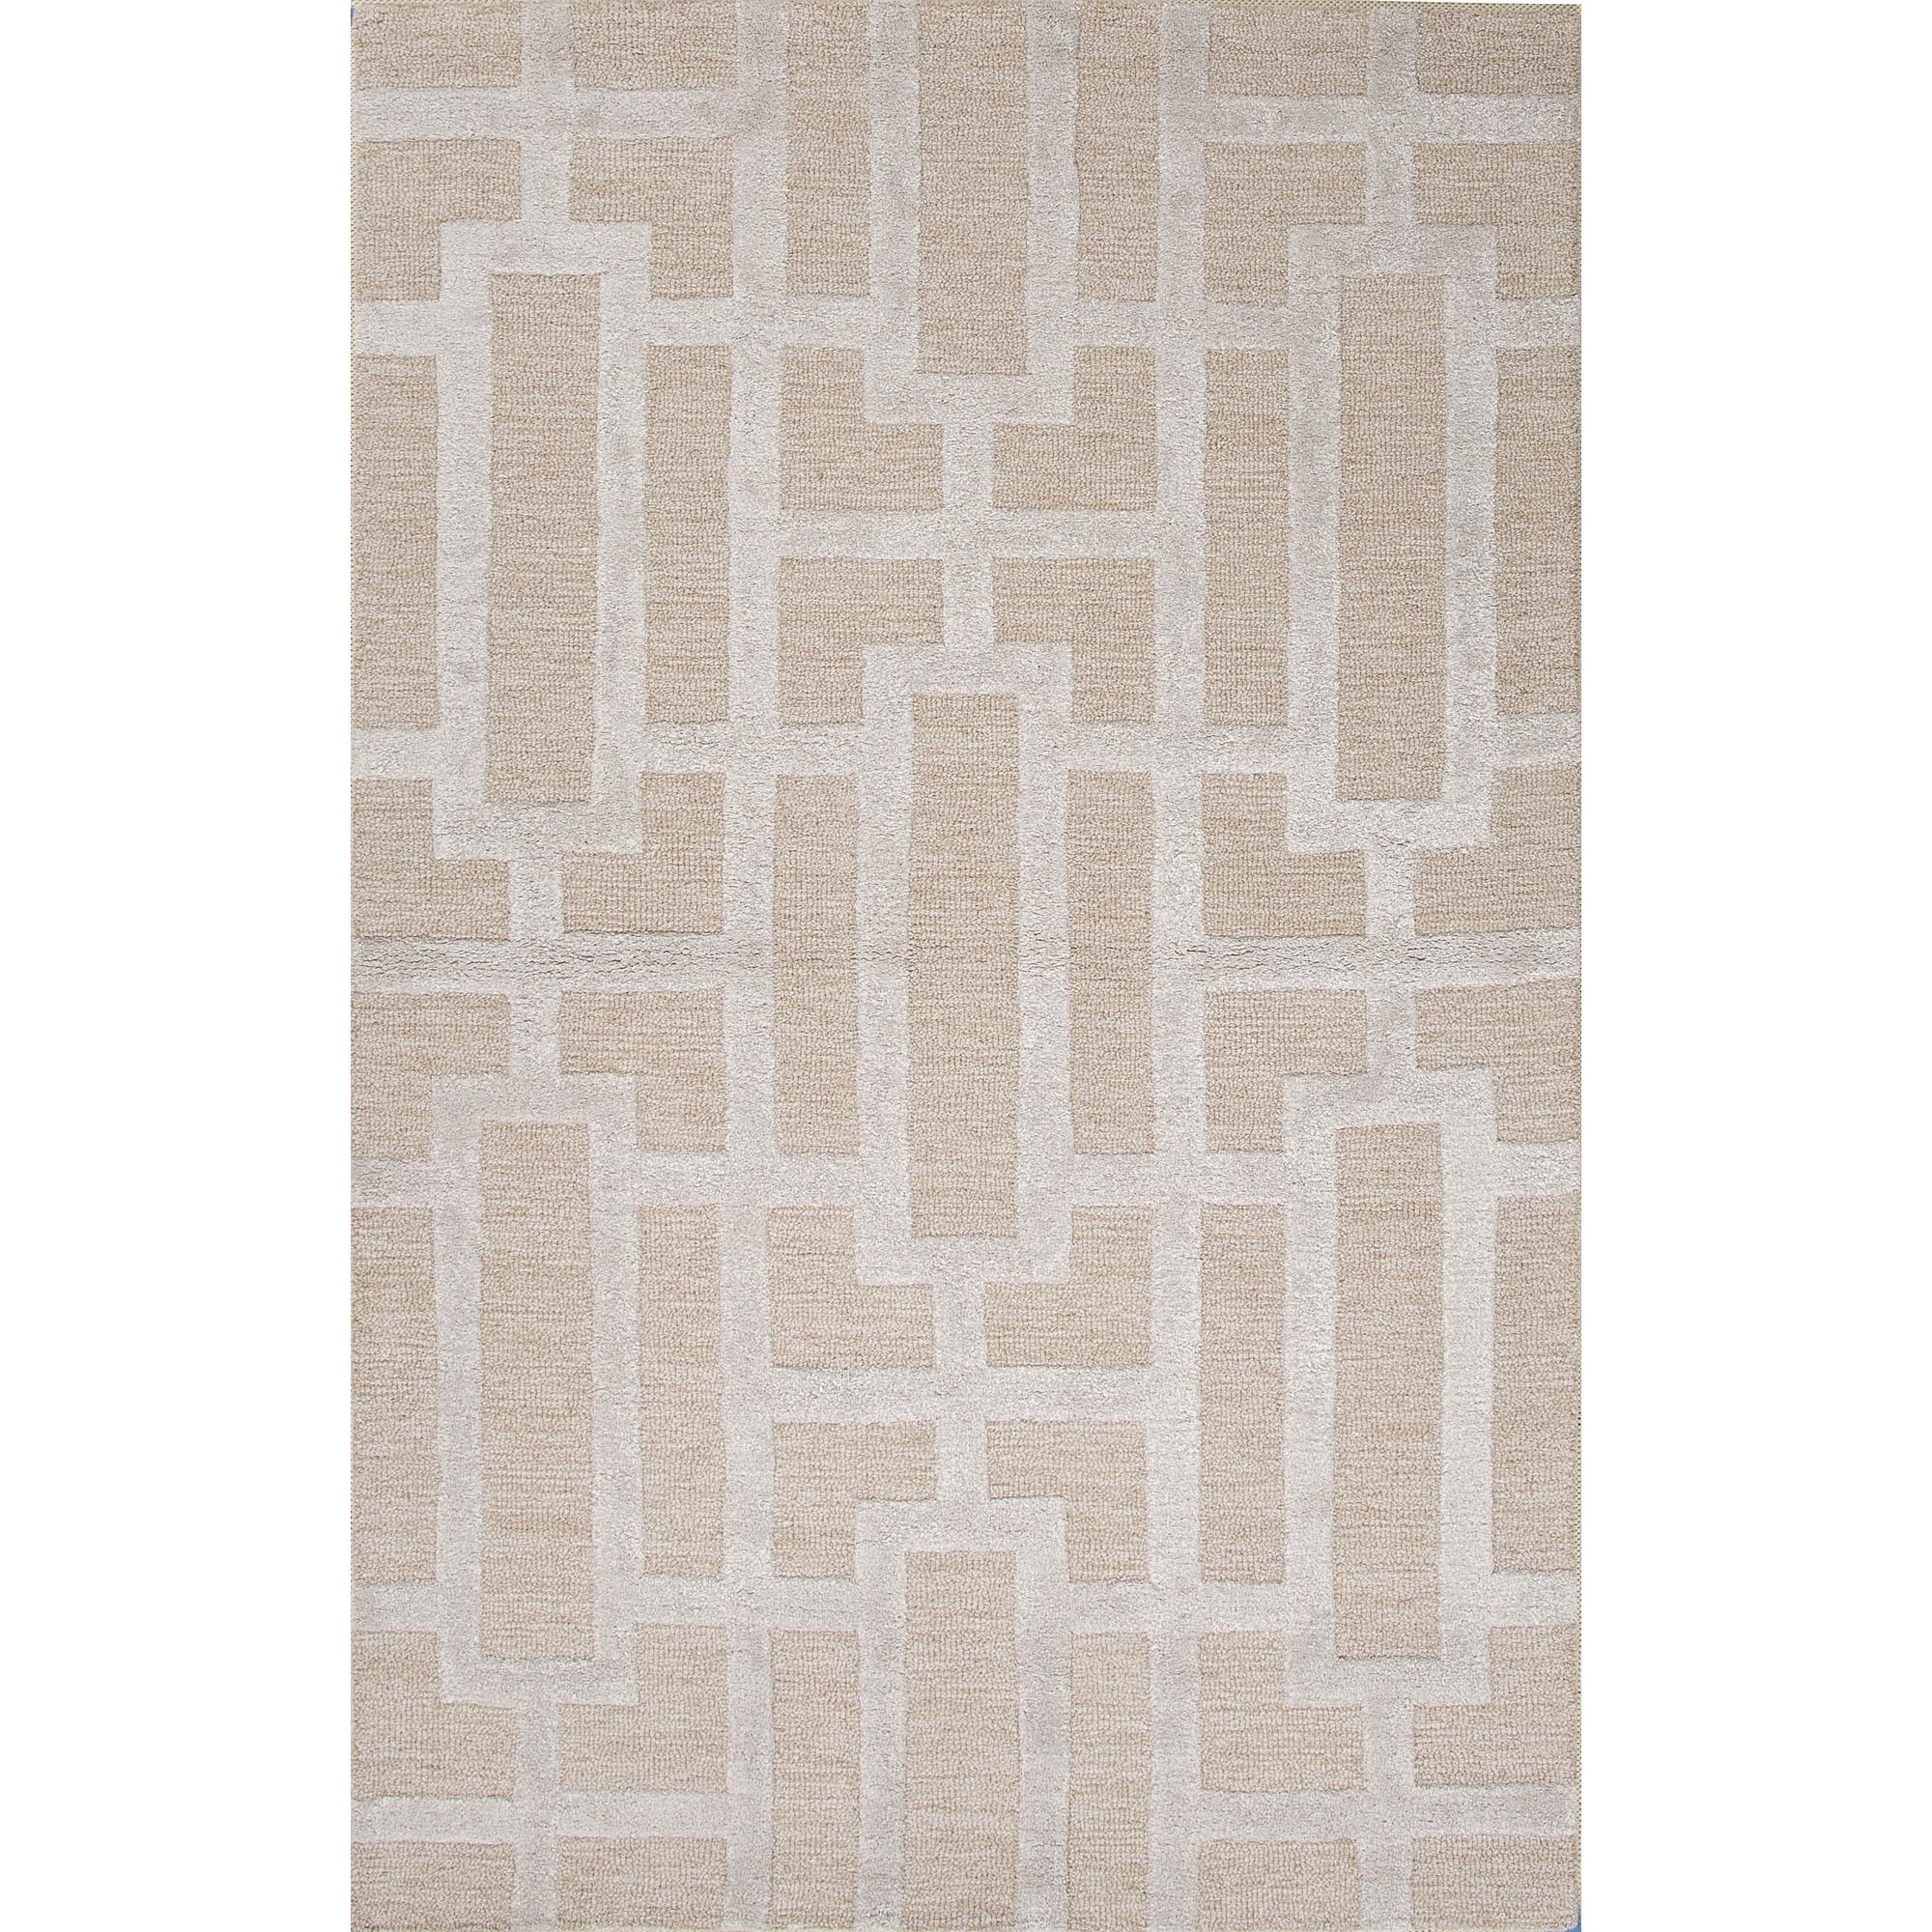 JAIPUR Rugs City 9.6 x 13.6 Rug - Item Number: RUG113654